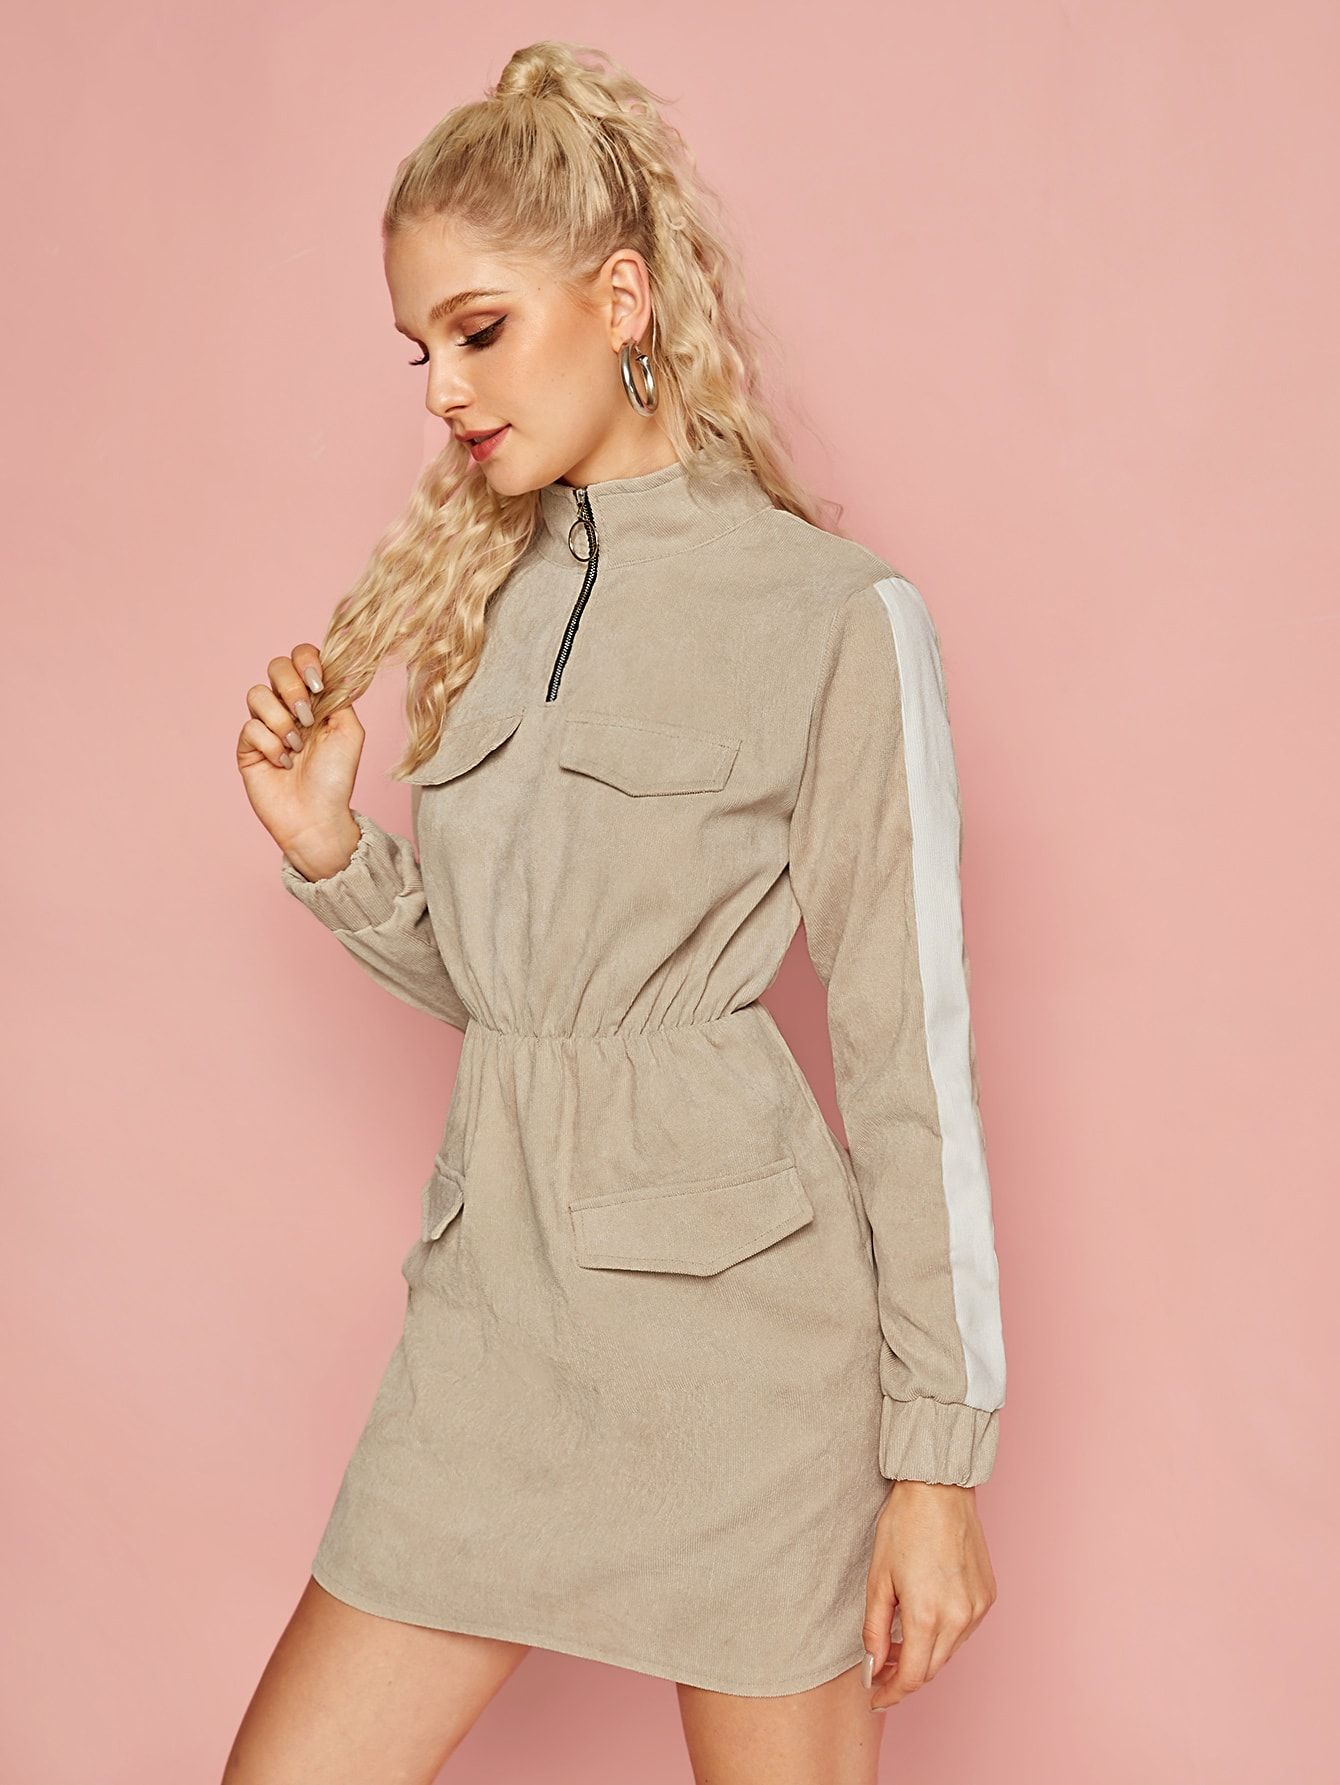 Ad Contrast Panel O Ring Zip Corduroy Dress Tags Casual Beige Colorblock Stand Collar Short Fitted Zipper Corduroy Dress Stand Collar Dress Fashion [ 1785 x 1340 Pixel ]